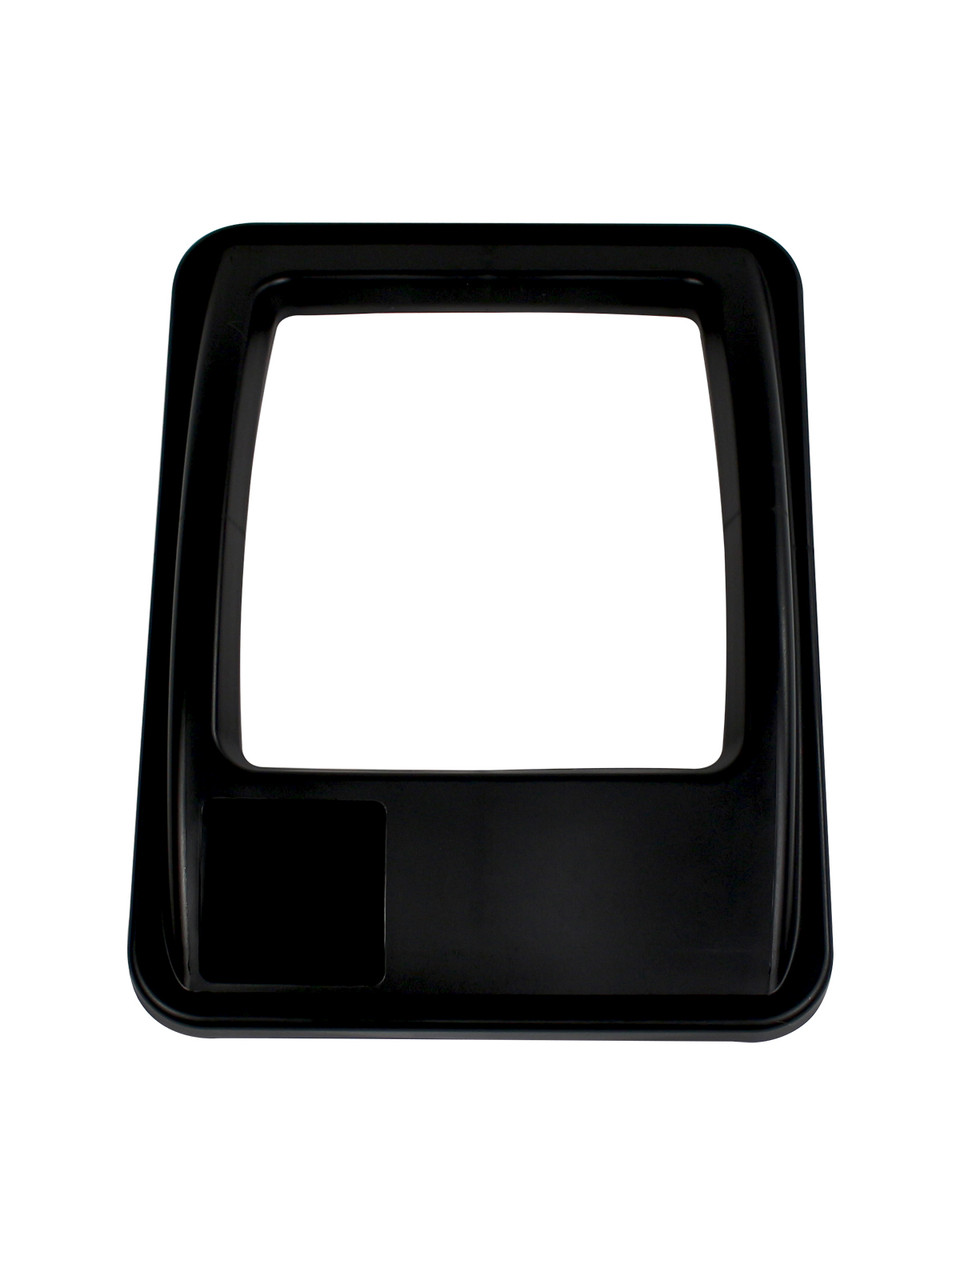 RECTANGLE OPENING LID BLACK